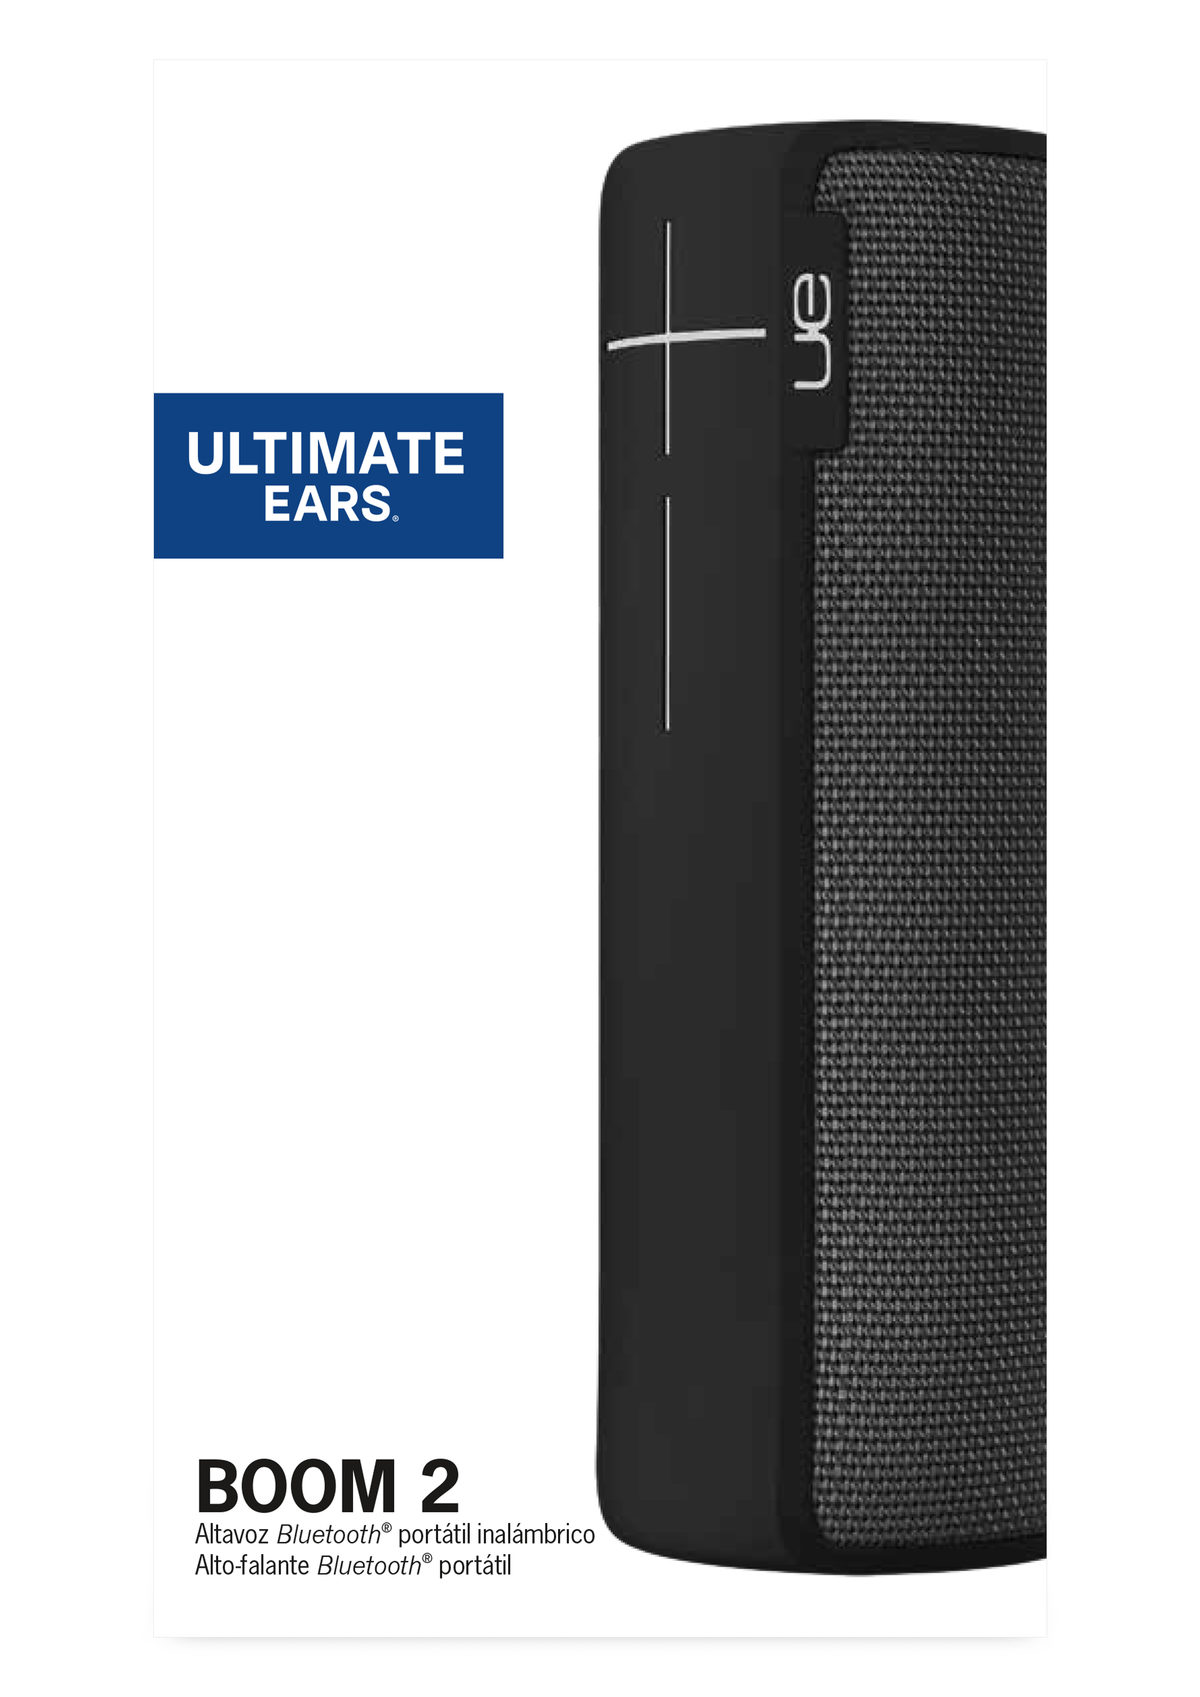 Ultimate ears boom 2 portable bluetooth speaker en us for Housse ultimate ears boom 2